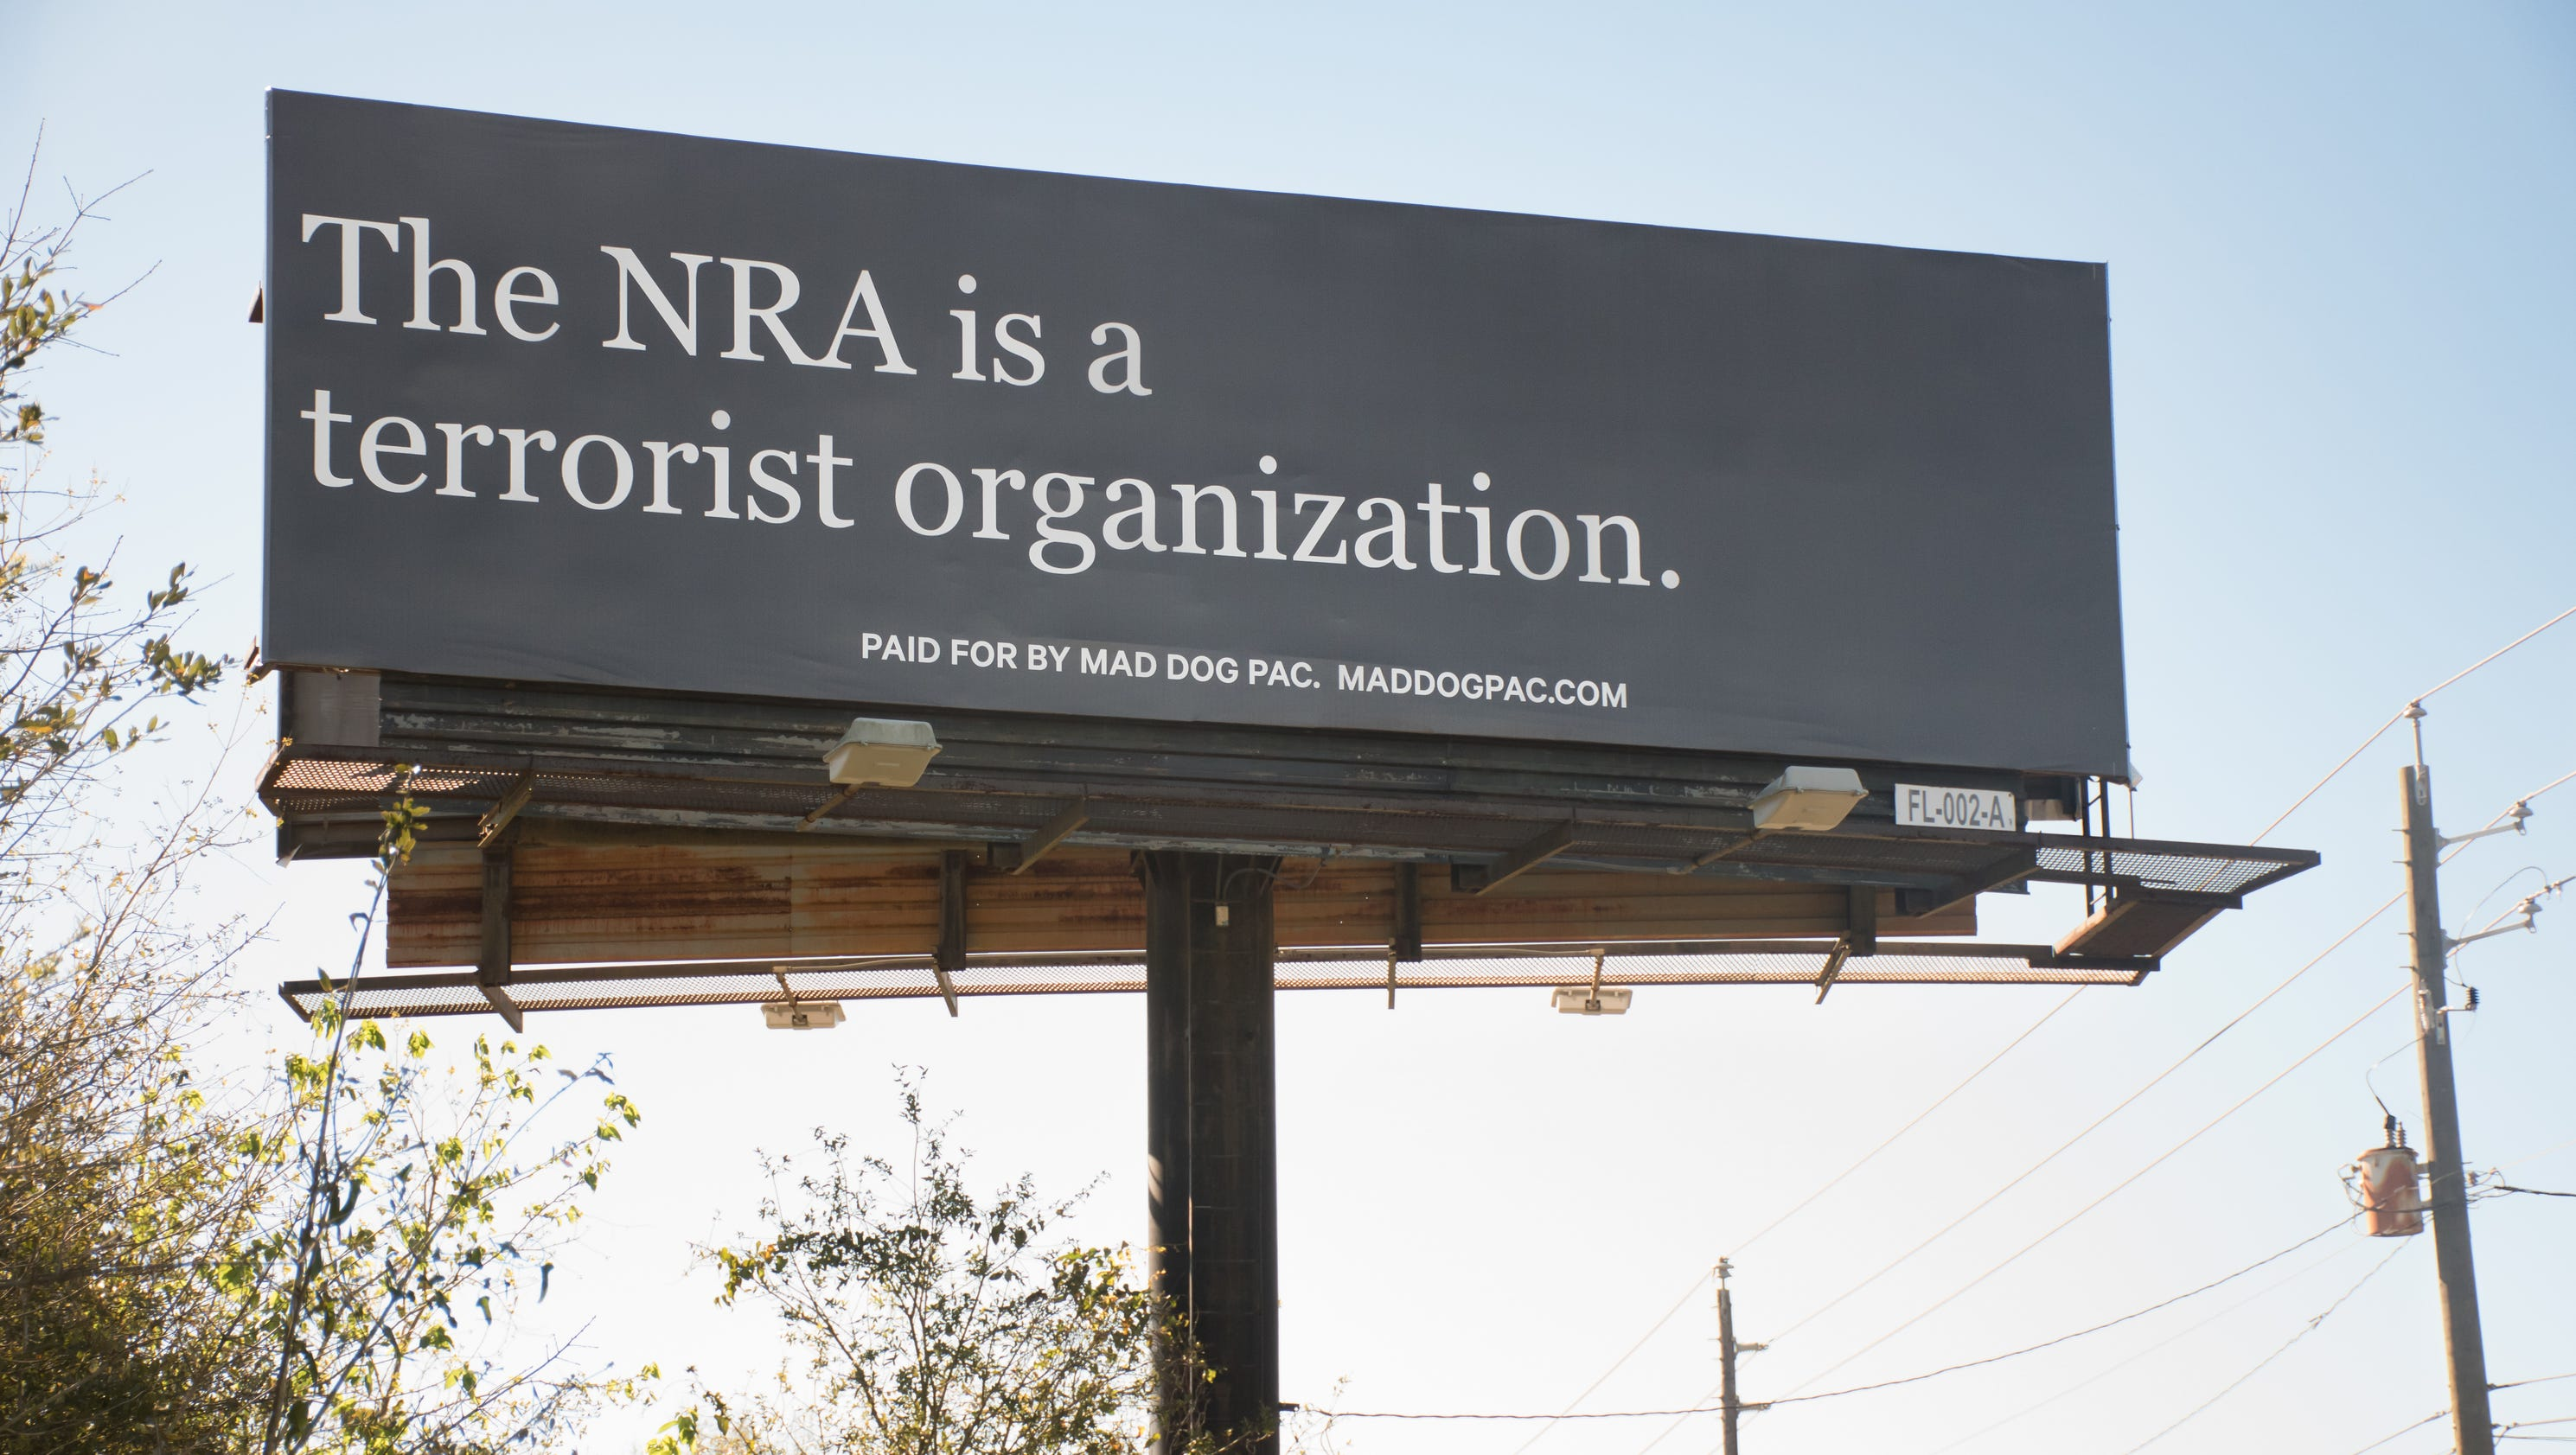 New billboard in pensacola refers to nra as terrorist organization stopboris Images